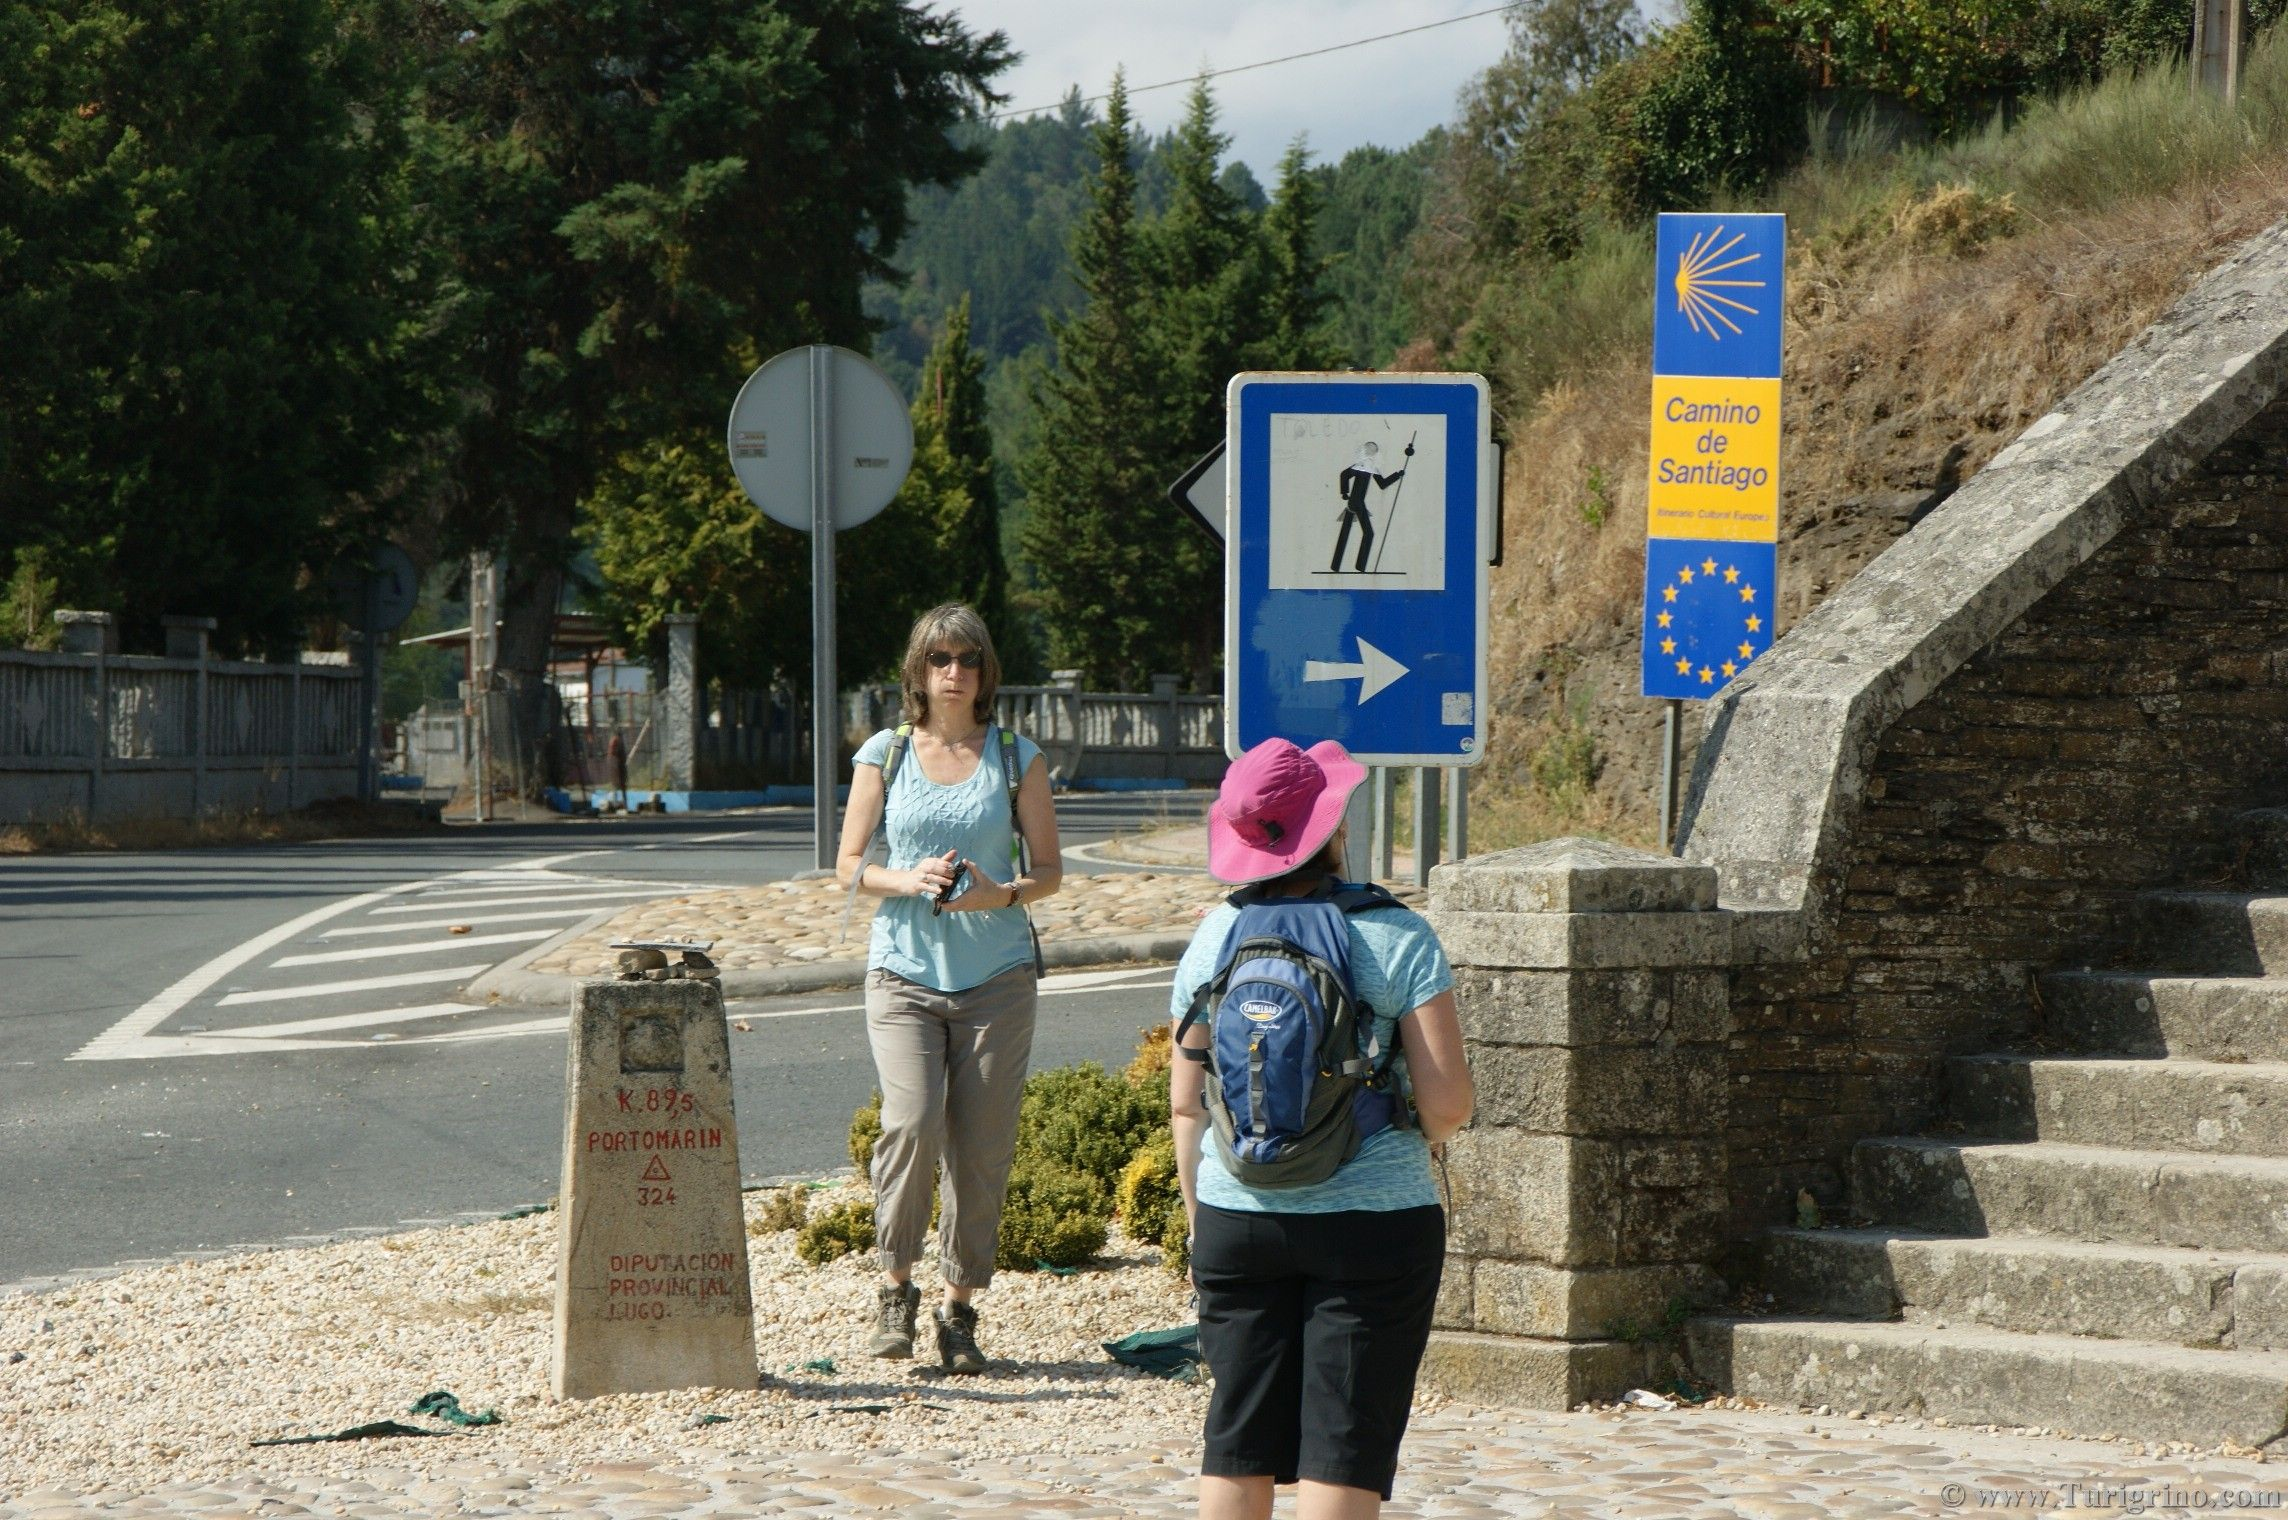 Buen Camino, #CaminoDeSantiago the way en #Portomarin